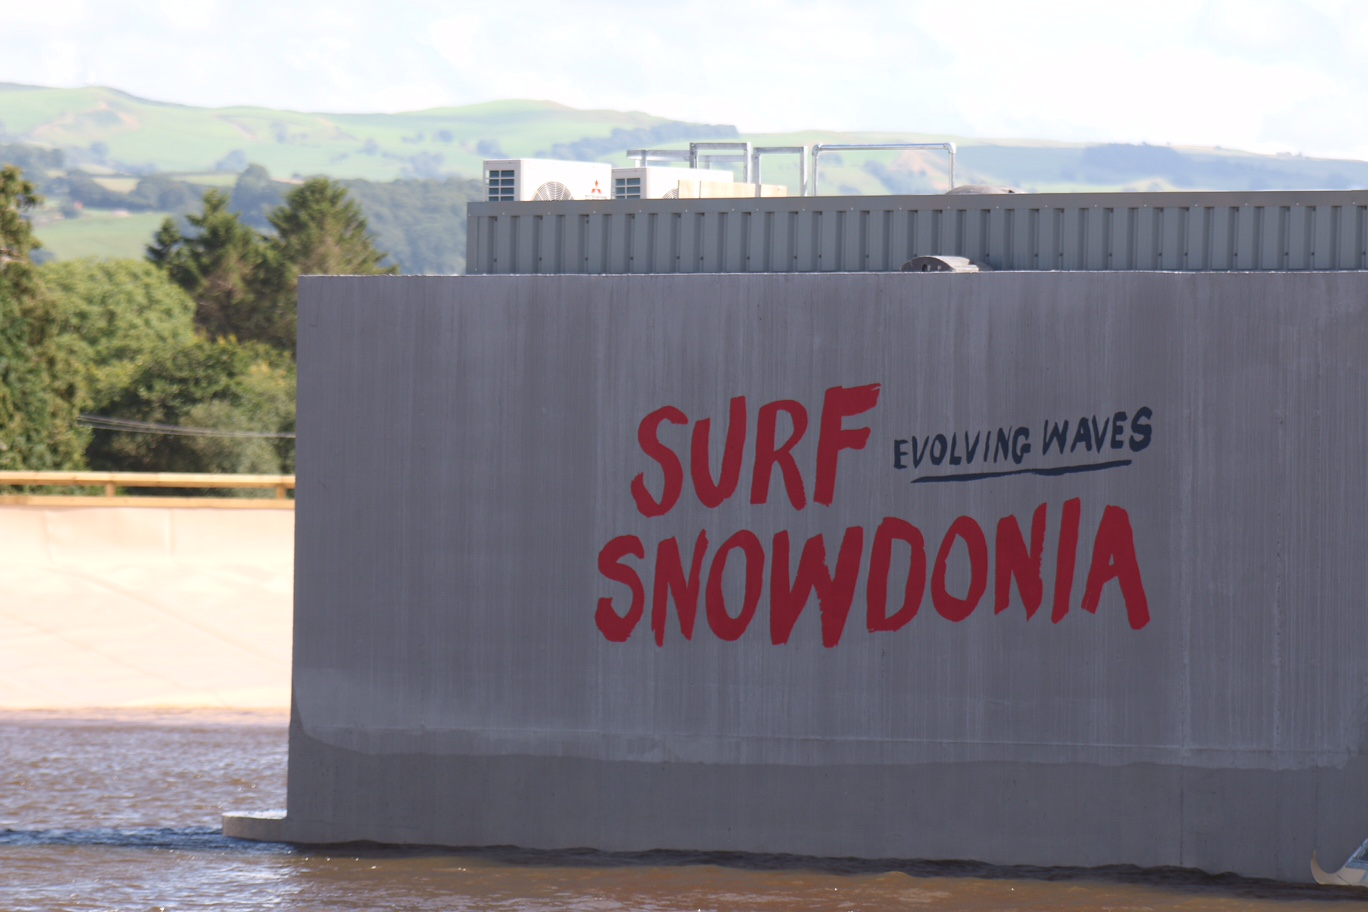 A Trip to Surf Snowdonia